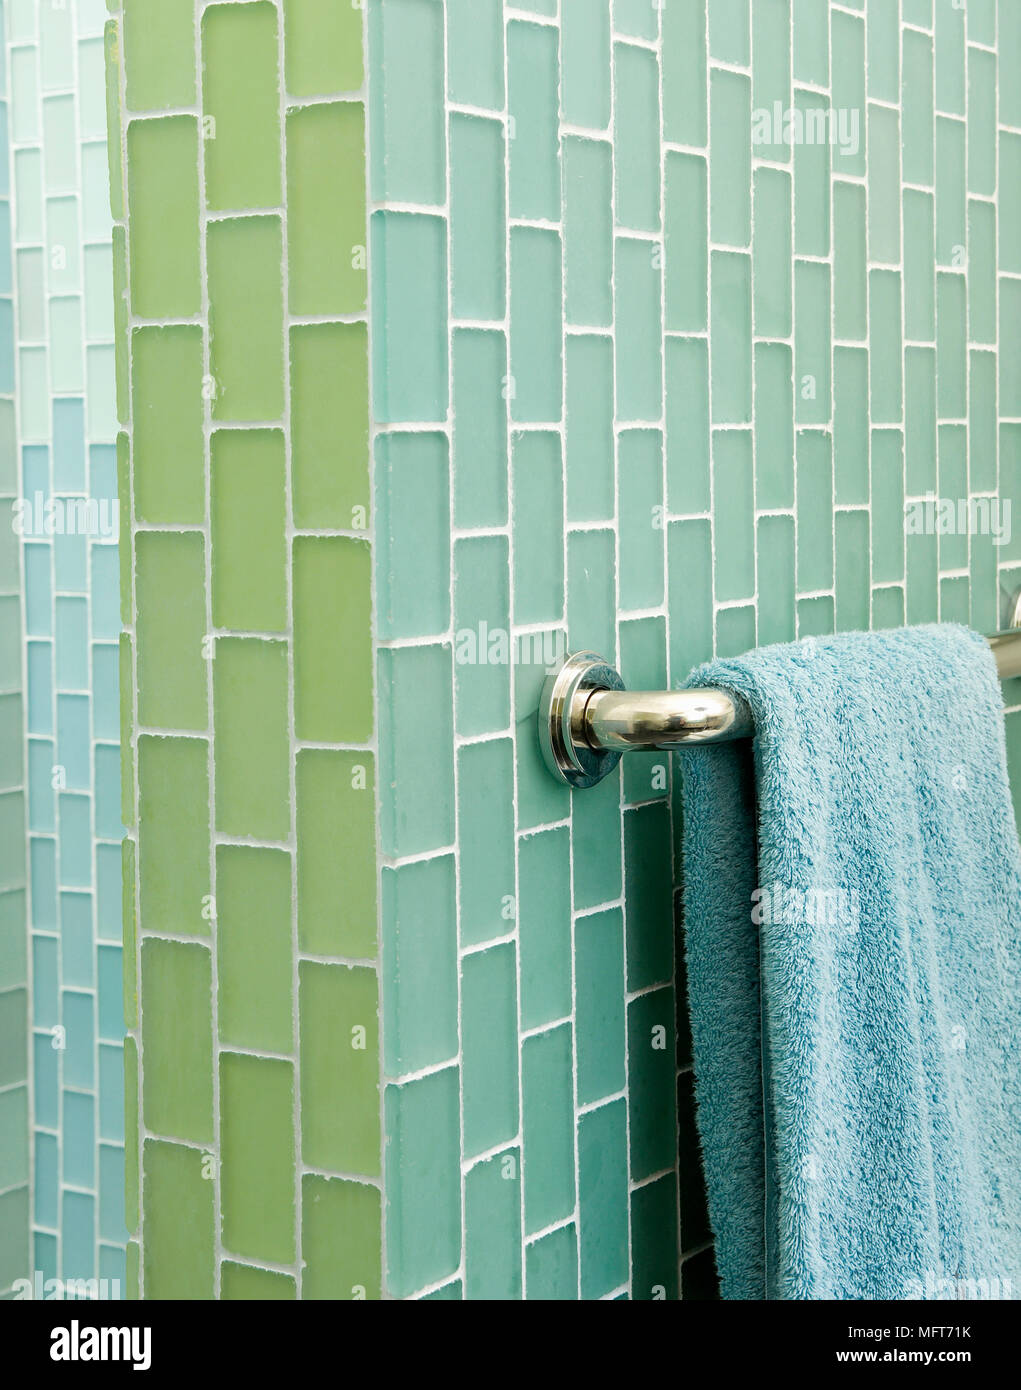 Bathroom Blue Tiles On Wall Stock Photos & Bathroom Blue Tiles On ...